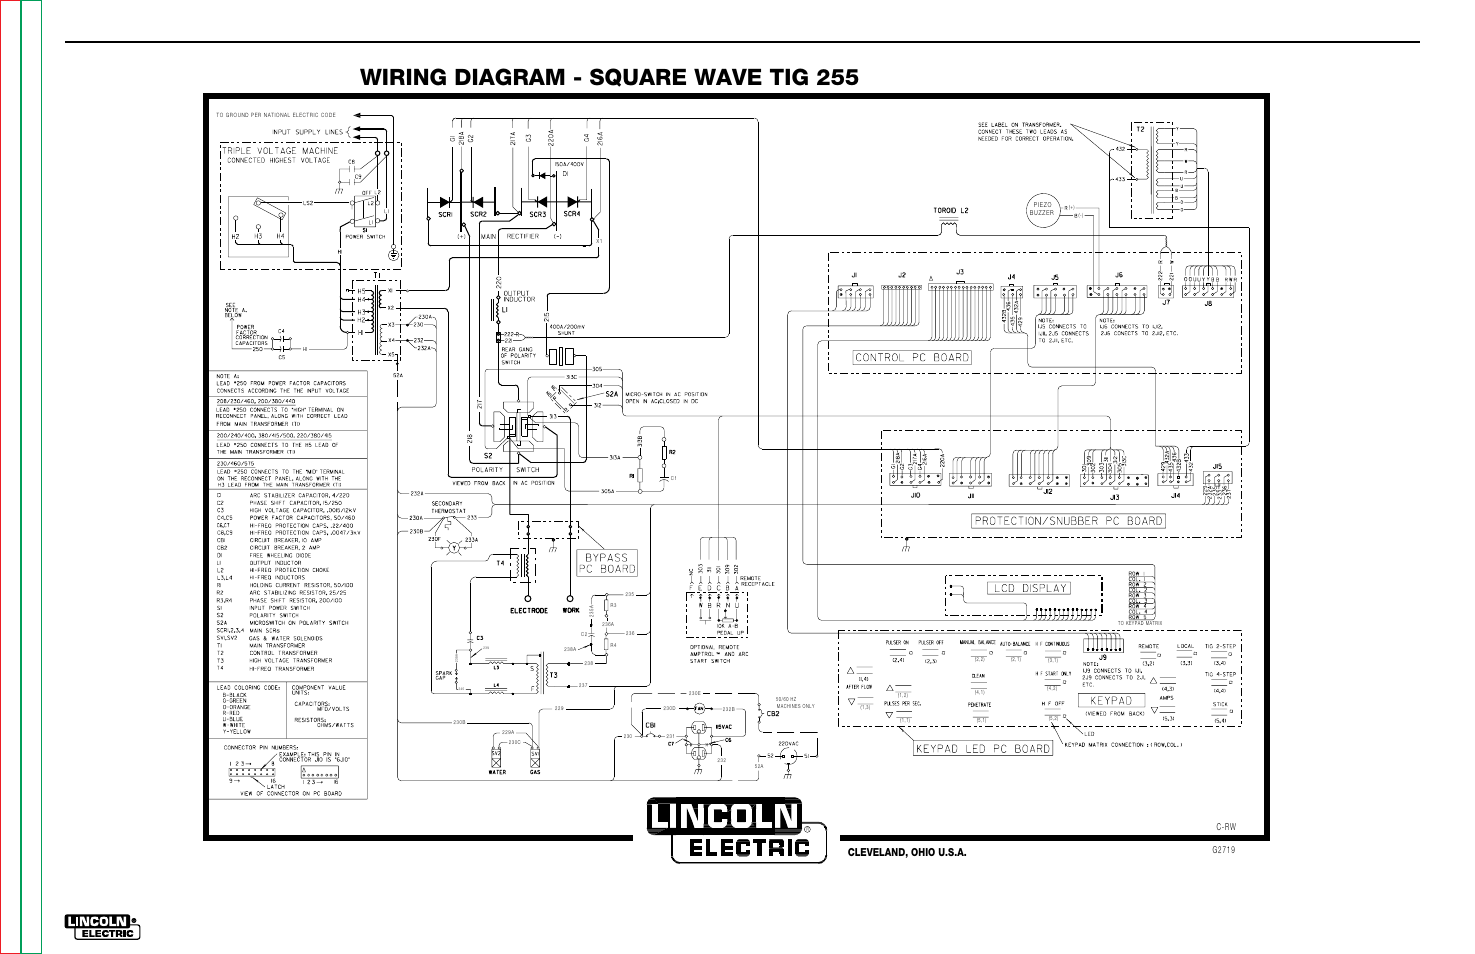 Lincoln Electric Wiring Diagrams Simple Diagram 300d Vacuum Electrical Square Wave Tig 255 Trimble